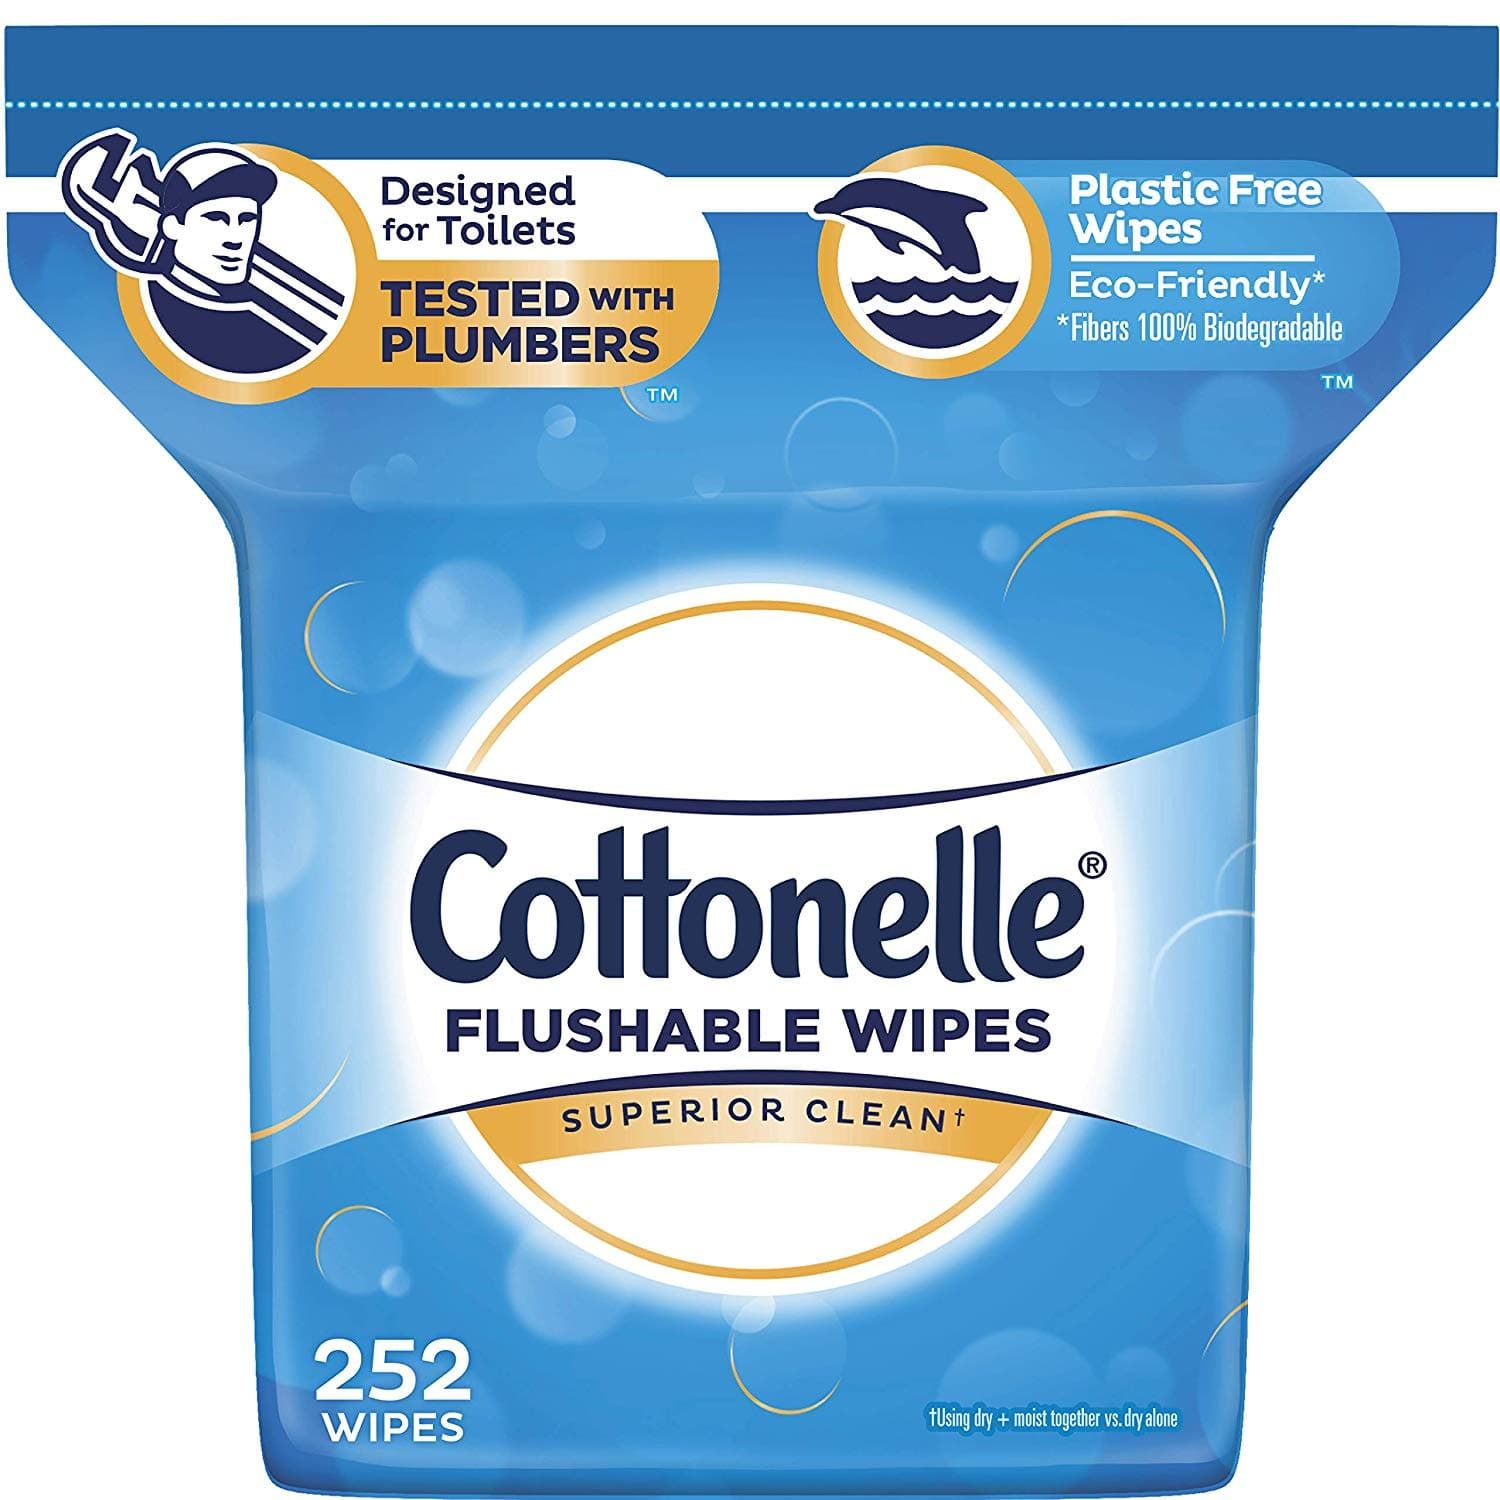 252 Count Cottonelle FreshCare Flushable Wipes (Alcohol Free) $4.75 after S&S